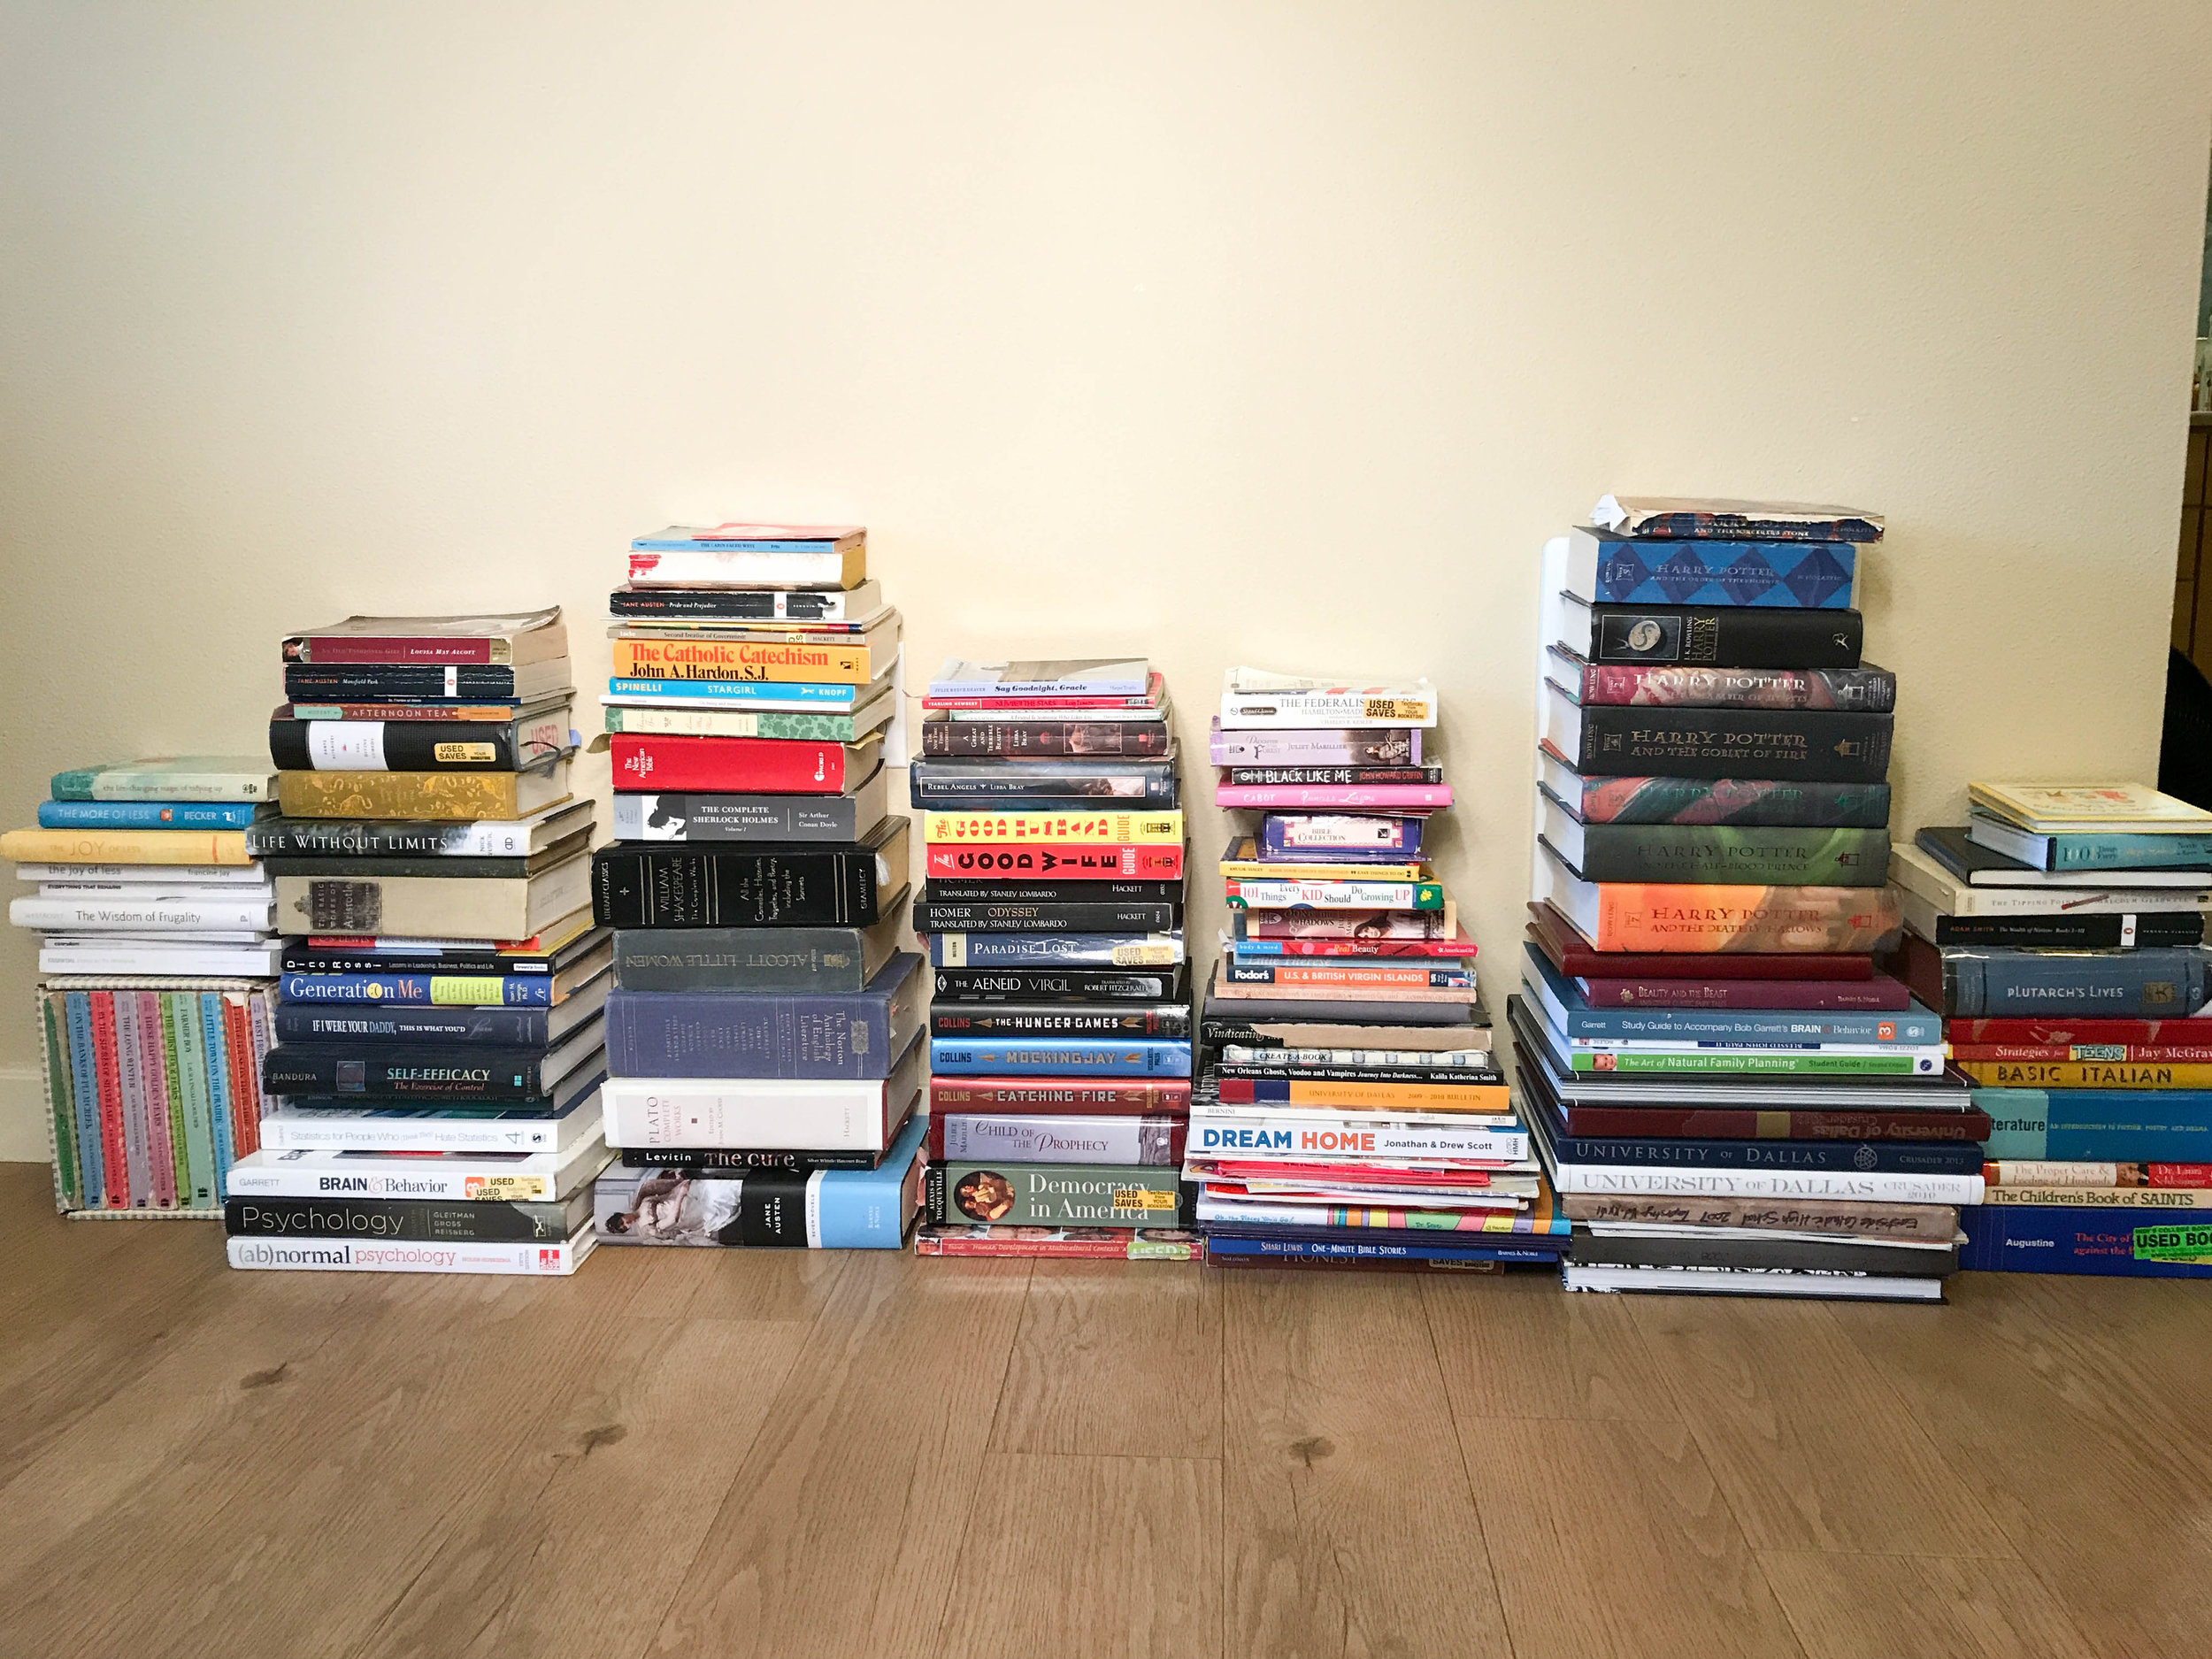 Juliauna's book collection (the minimalist)